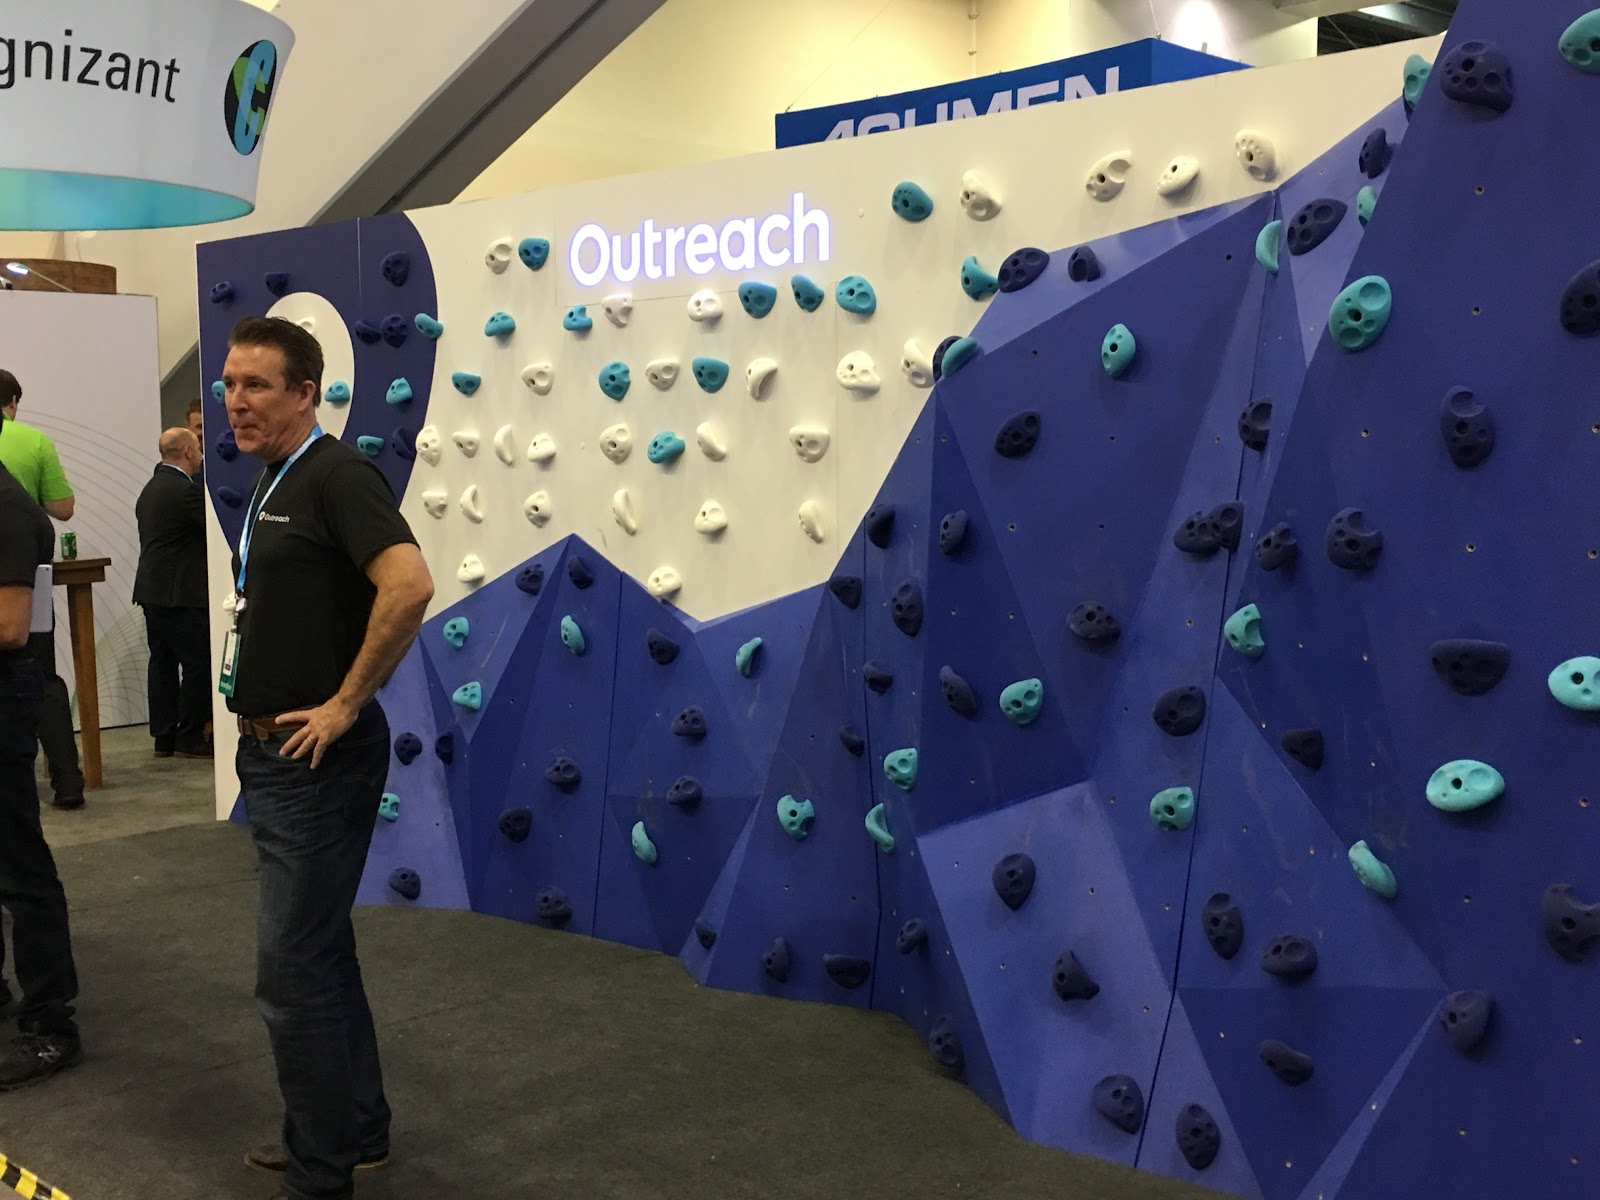 Outreach booth at Dreamforce 2017